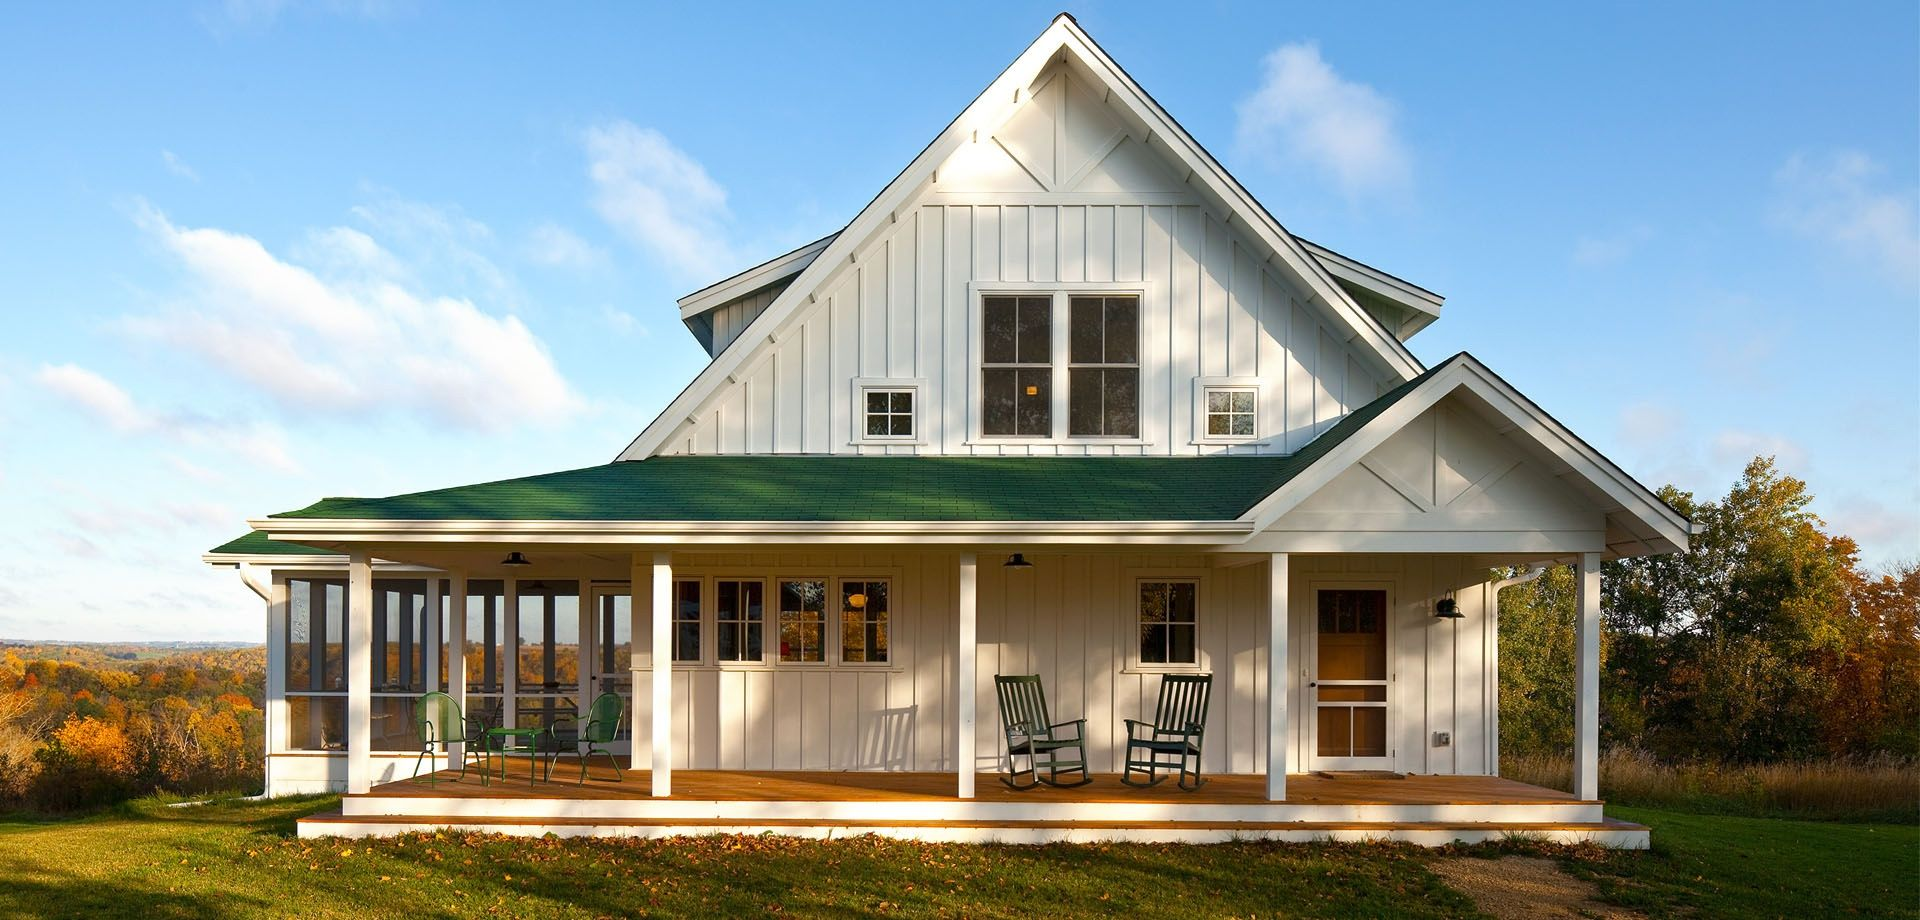 Holly ridge farmhouse we like the roofline shed dormers for Texas farm houses